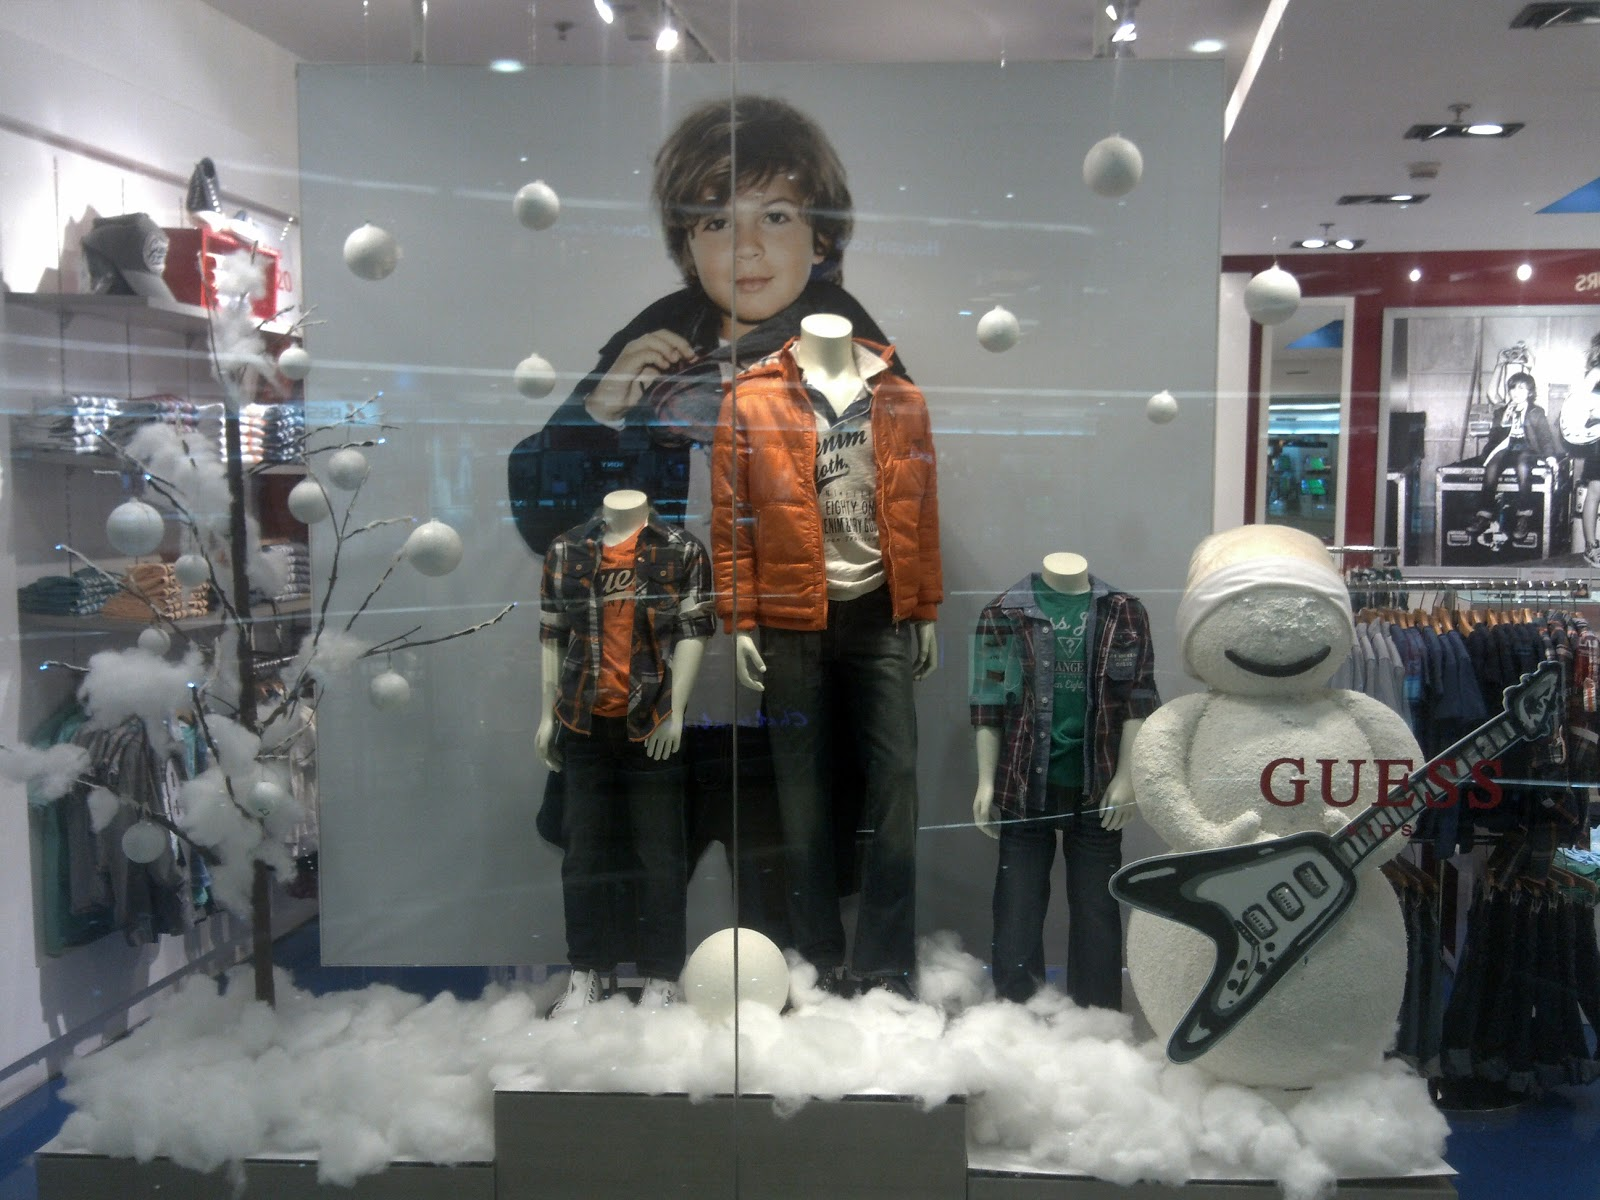 The winter window display for Guess kids has the main scene with a white situation, including a snowman and white pieces of cotton as snow.